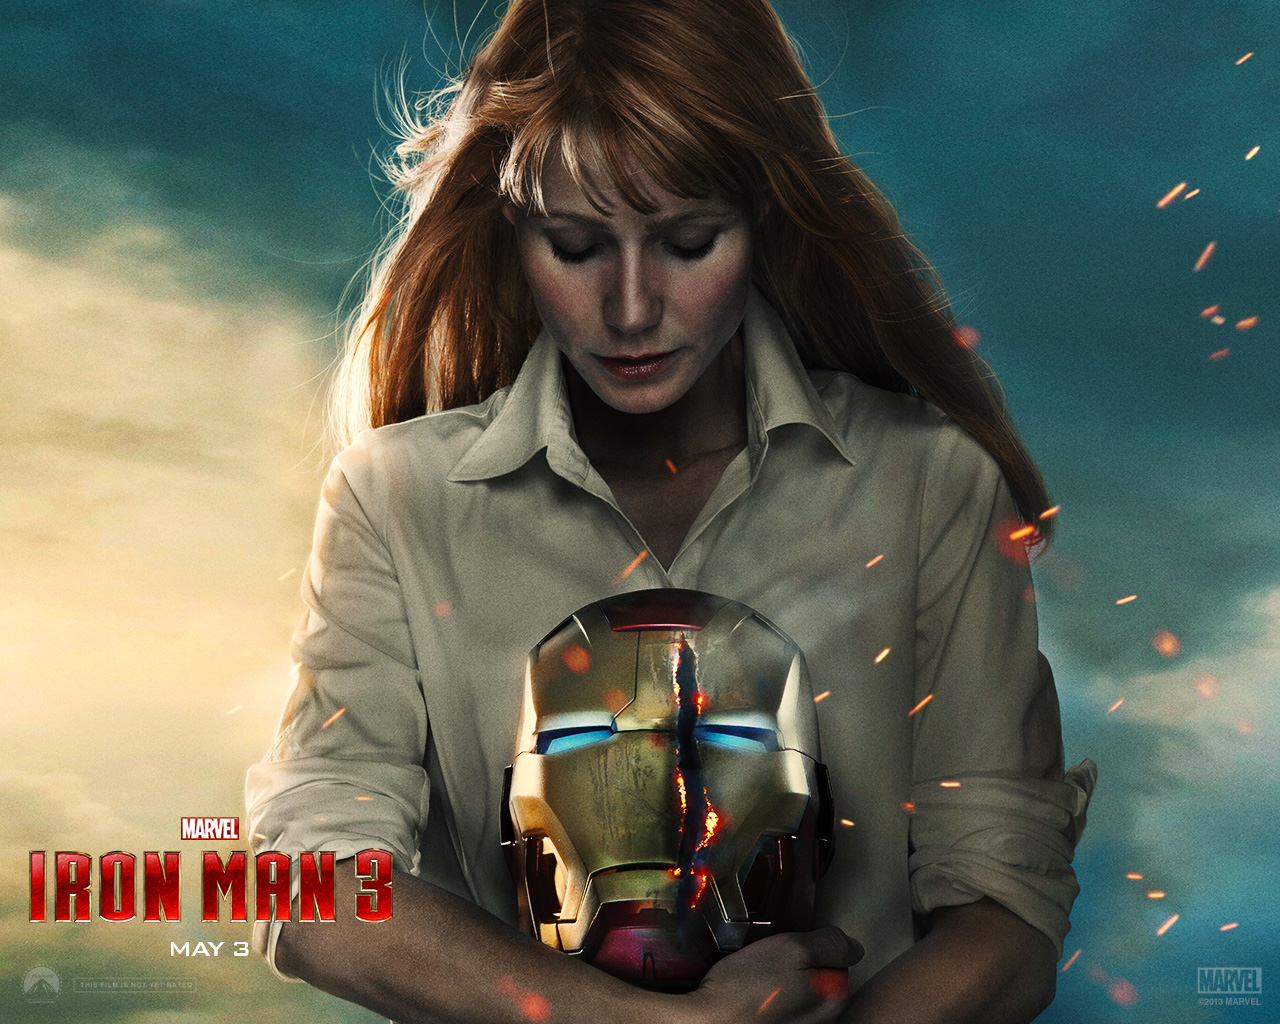 Army of Iron Man Iron Man 3 HD Wallpapers for Windows 8 (5)